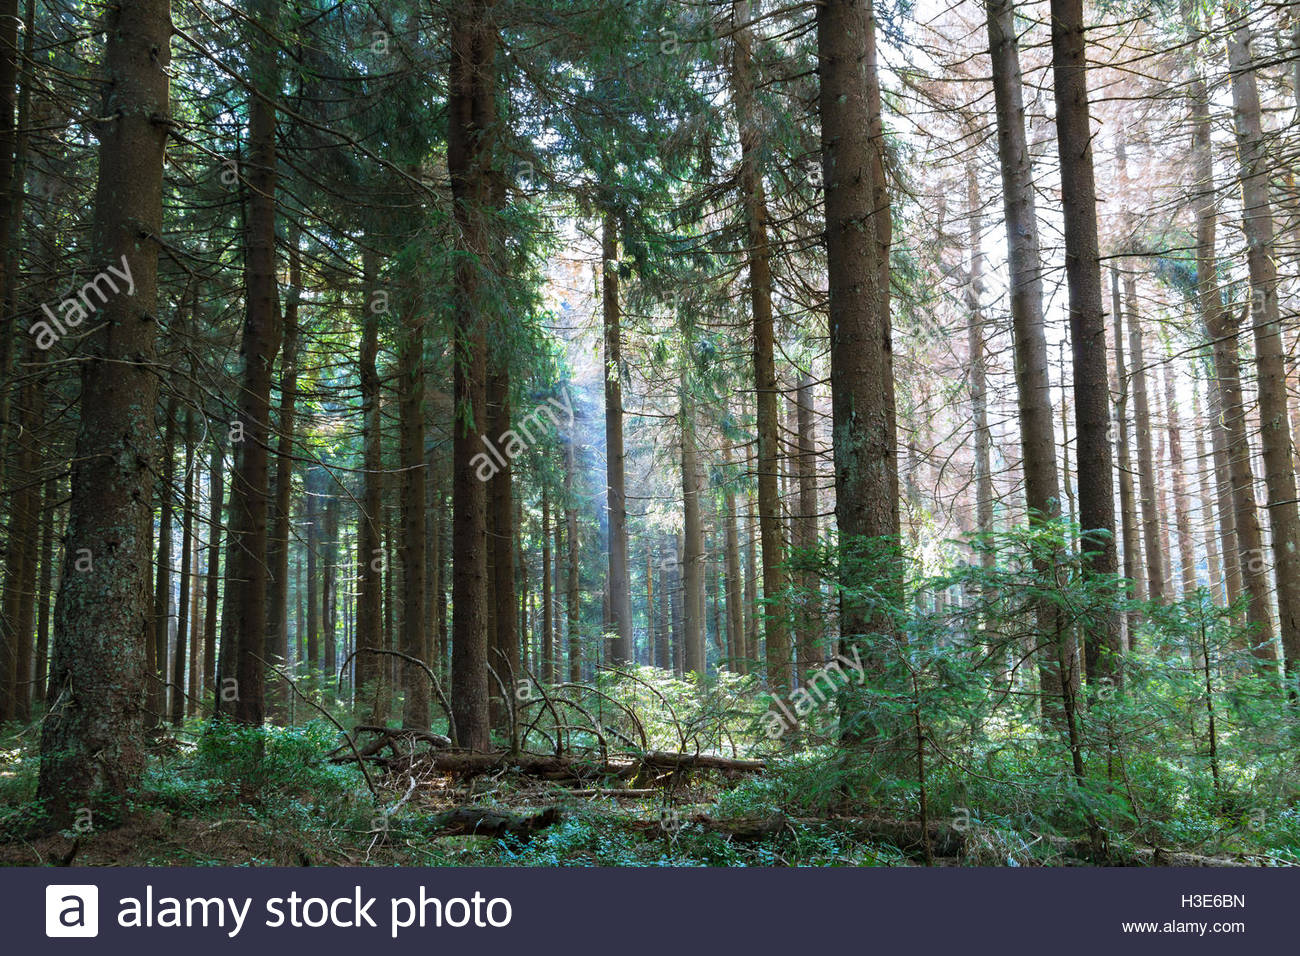 Woodland landscape trees green forest sunlight abstract nature peaceful forest sustainable german nature landscape - Stock Image